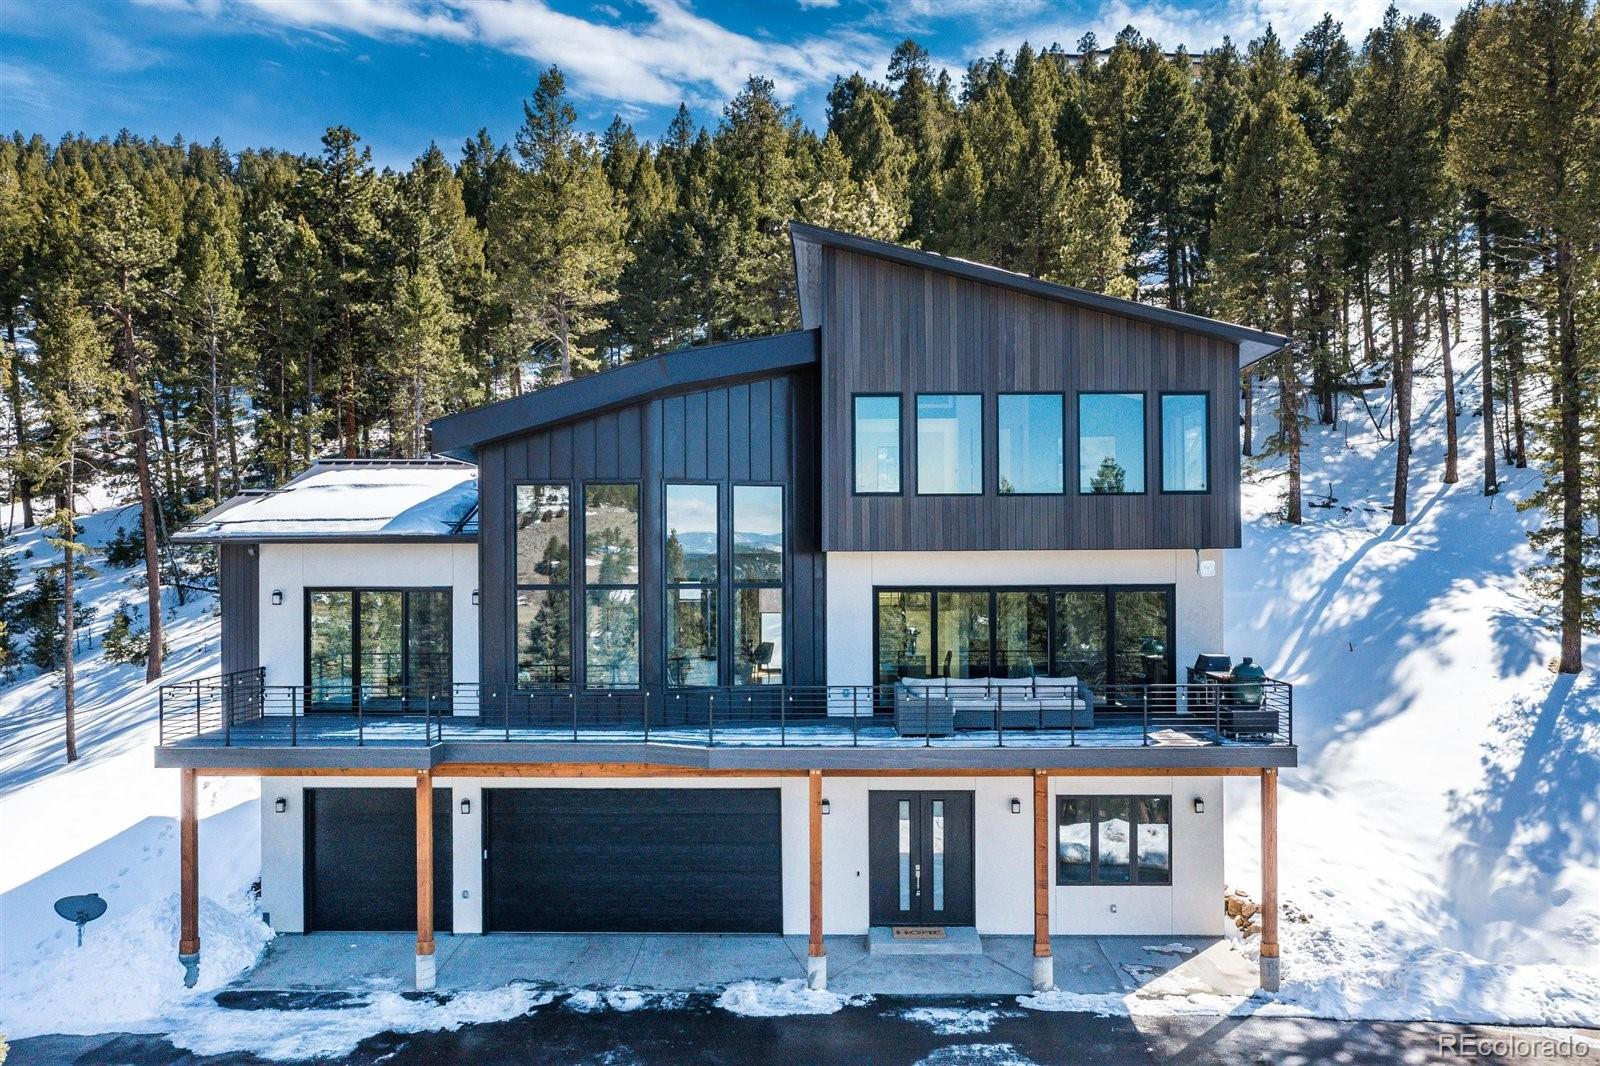 """A magnificent mountain vista w/ custom designed high-end finishes, spectacular views, & only 7 min to downtown Evergreen! Enter the front doors & walk into a lobby w/ soaring ceilings & modern light fixtures. This lower level has a den (great workout room or additional office), a full bathroom & a perfect guest w/ a good size storage closet. Head up to the main level & you will be wowed instantly by the spectacular great room! With floor to ceiling windows & an impressive center gas log fireplace w/ inset chopped wood, this space is beyond impressive. The open floor plan connects the dining room & the gourmet kitchen w/ high & Bosch appliances, a coffee/wine bar & unique granite island. One of this home's greatest features is the access to the outdoors. The 5 panel glass doors from the kitchen & dining slide back fully, creating a natural flow from the large deck into the main living space. Enjoy cookouts w/ your outdoor kitchen w/ grill, mini fridge, & smoker. The main level also consists of an office w/ built-in desk & full bathroom. The large laundry room attaches to the walk-in pantry & opens to the back patio w/ hookups for a hot tub. The main level master bedroom also has direct access to the deck. The spa-like master 5-piece bathroom has a large shower, freestanding soaking tub & walk-in closet. Upstairs you will find 2 additional bedrooms, perfect for """"bunk"""" or guest rooms, & a full bathroom. The upper loft in this home is the true showstopper w/ panoramic views of snow capped mountains. This is a great theater or party room. The home is complete w/ a 3 car garage w/ heated floors & pre-plumbed for a utility sink or dog wash. Additional features: public water & sewer, NETEO high-speed internet, DirecTV & StarLink, snow/gutter guards, surround sound speakers, & $125,000 worth of hardscaping, ready to add your landscaping touches! Enjoy all Evergreen has to offer in just minutes or commute to Denver in 30-45 minutes. The perfect """"near everything"""" mountain home"""